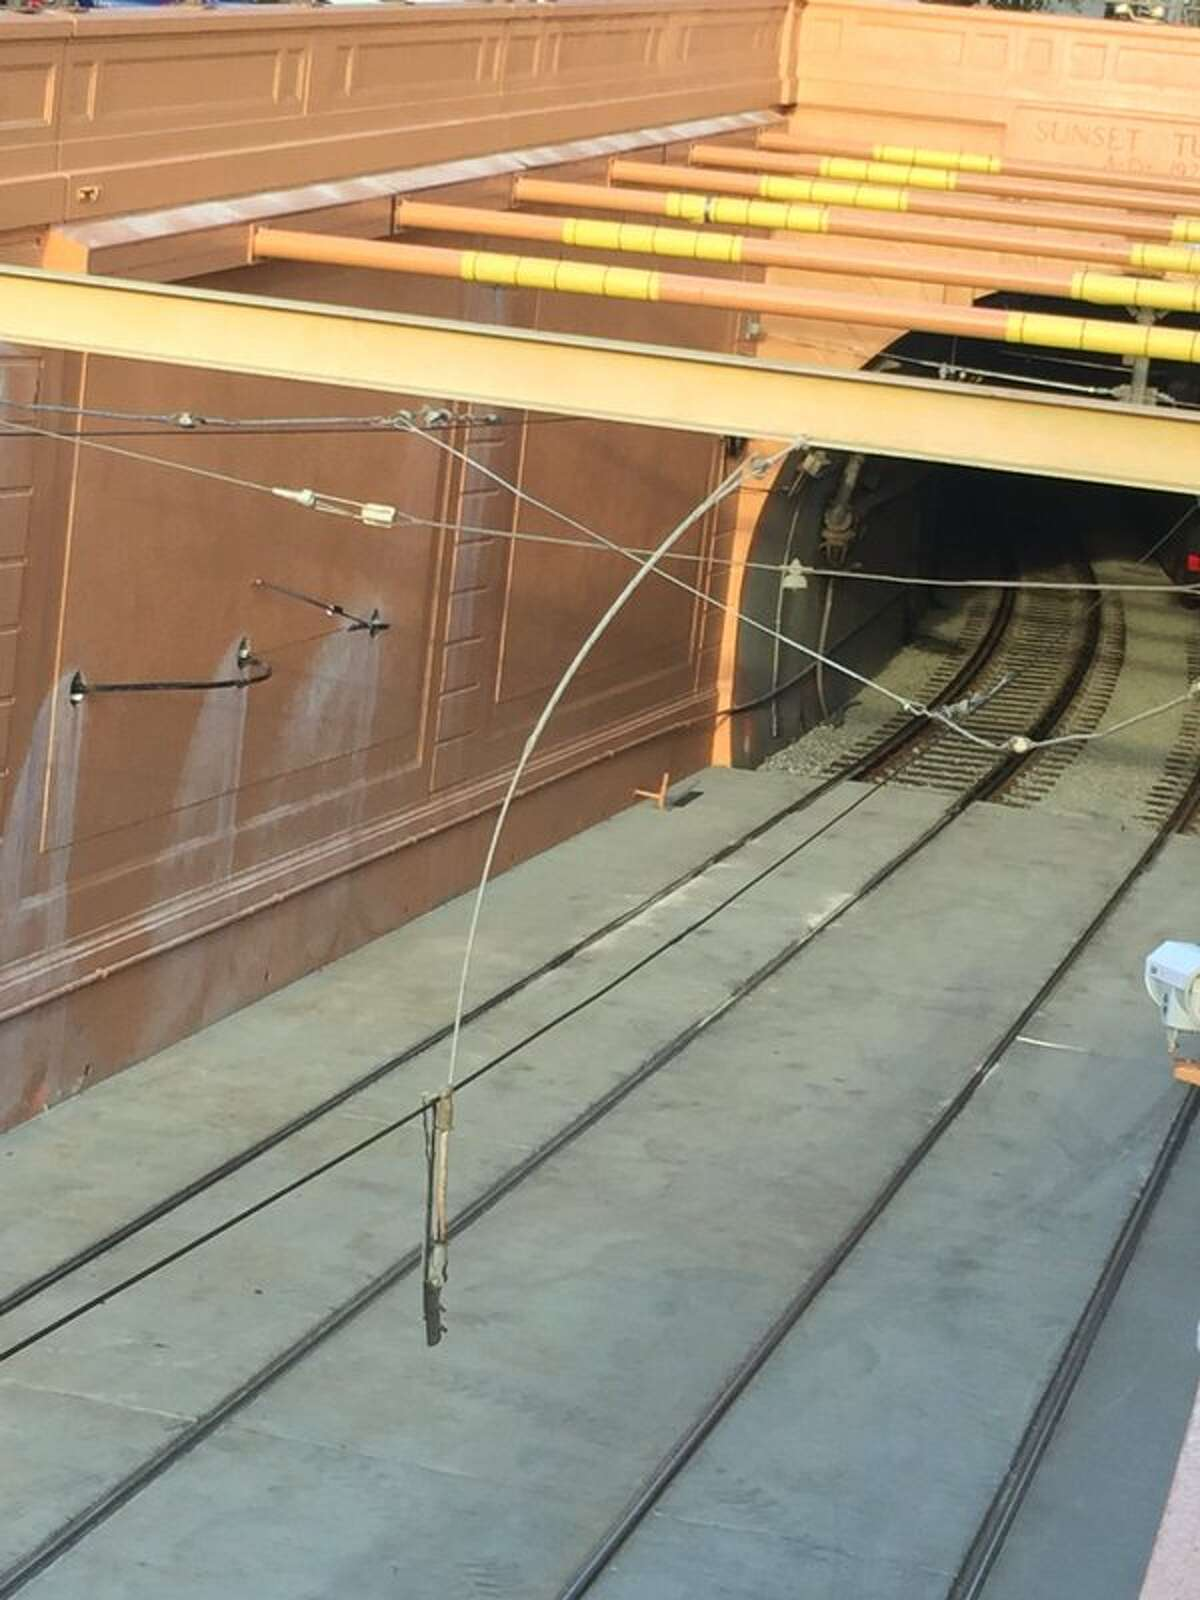 Malfunctioning overhead wires at the Duboce tunnel forced a closure of inbound N-Judah trains during the morning commute.